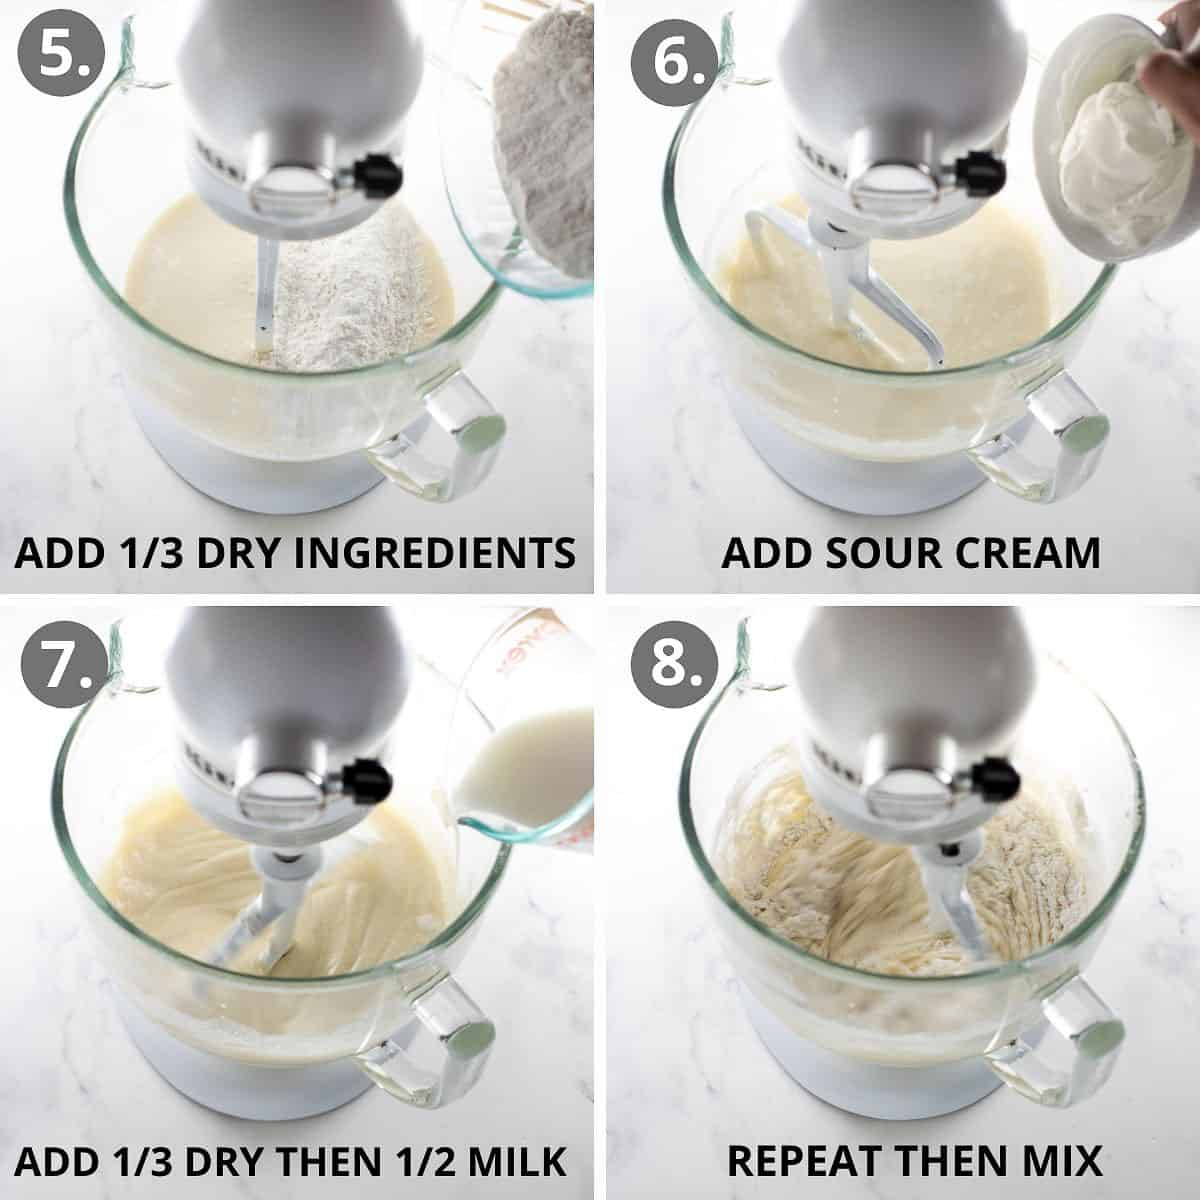 step by step photos of how to make add the dry ingredients to the cake batter